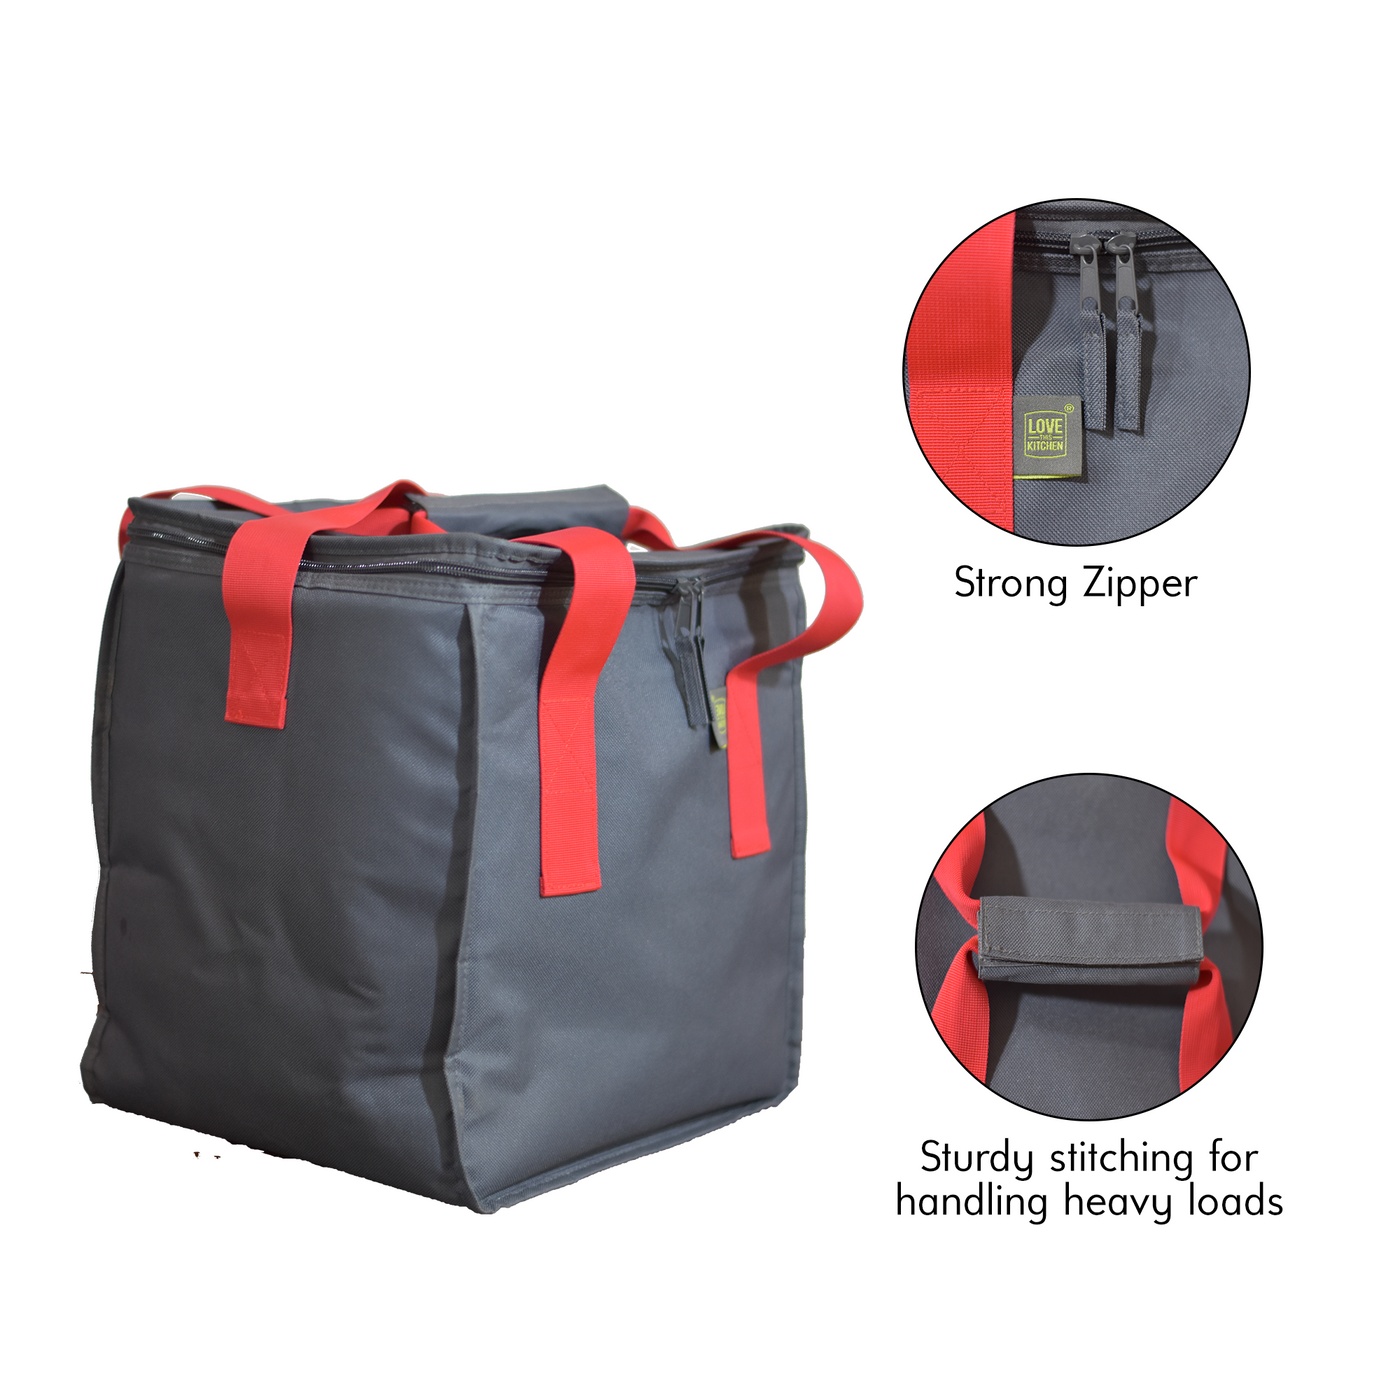 The Ultimate Insulated Cooler Box w/ a Zippered Top & Dual Handles for Shopping Groceries. Cool Beach & Picnic Bag